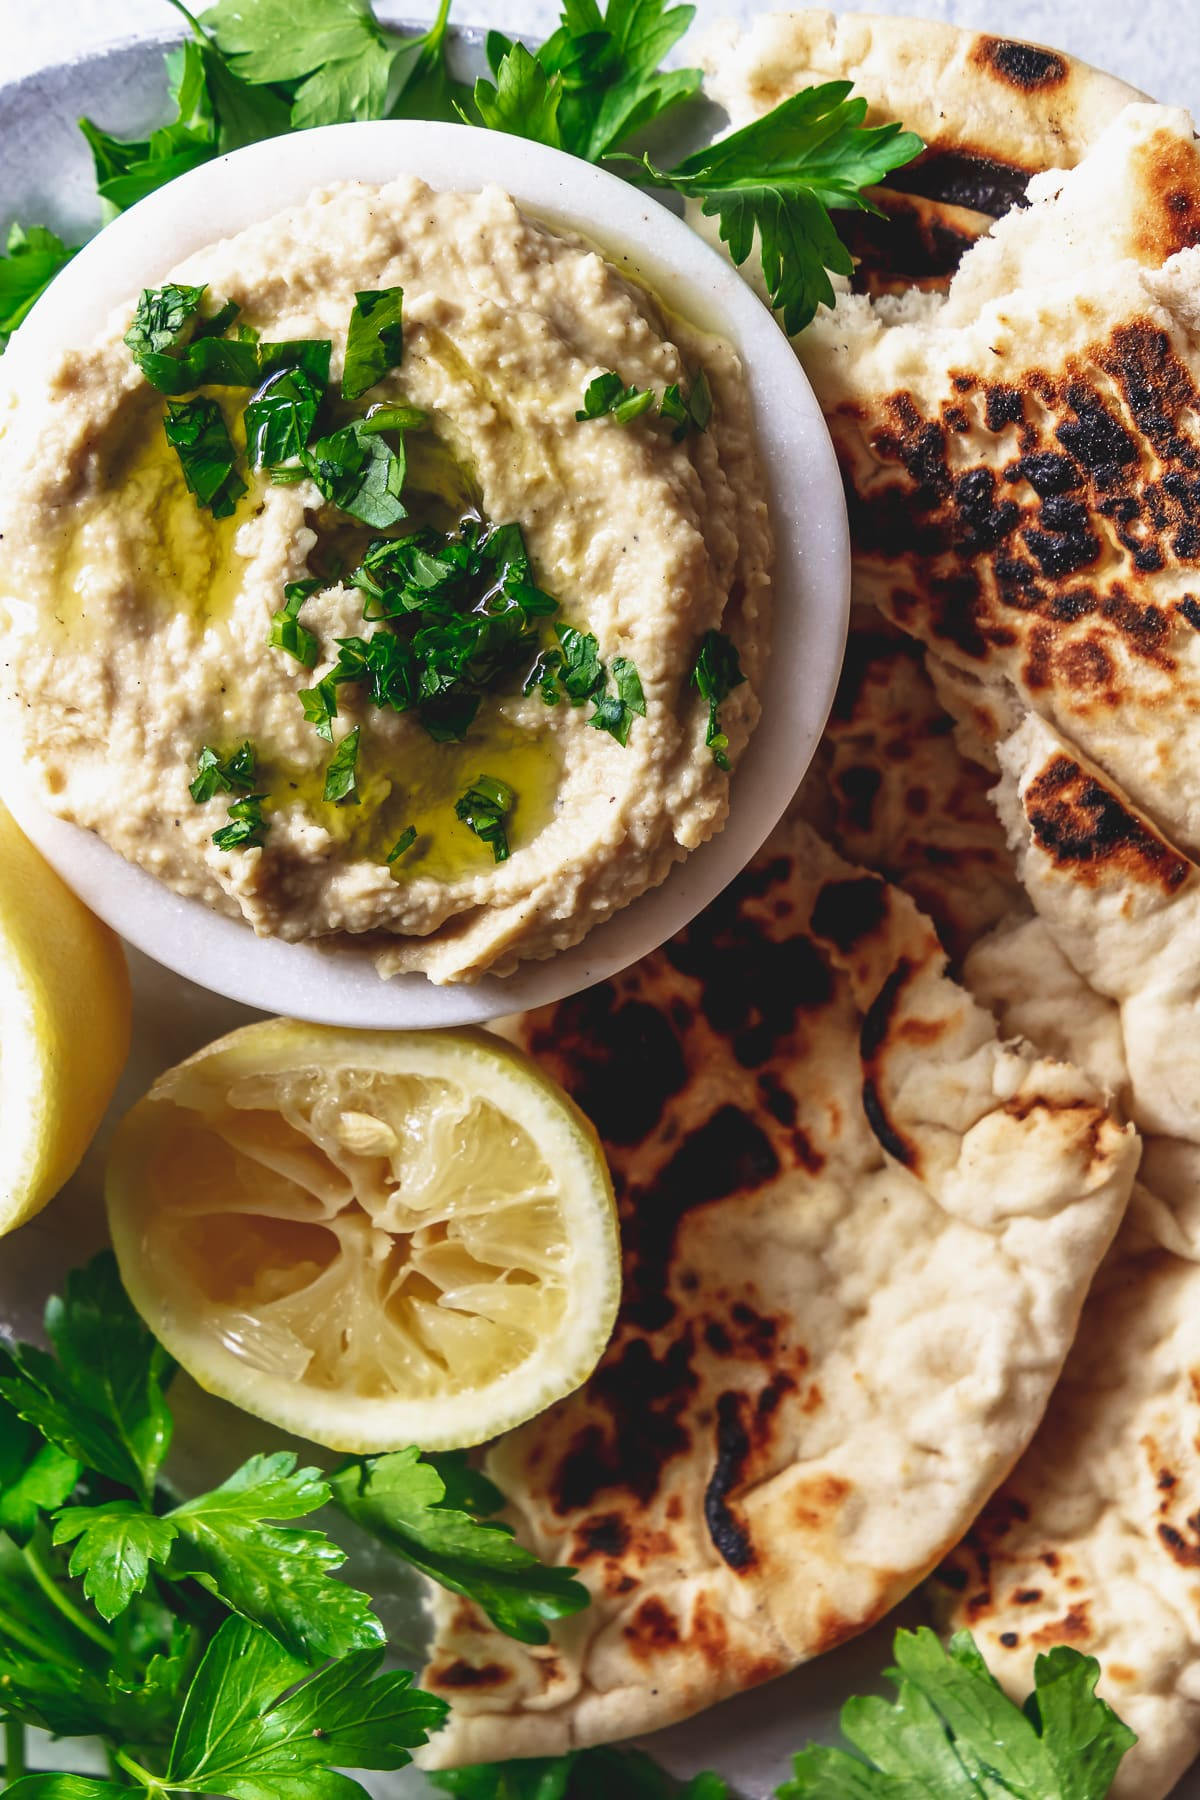 lemony hummus in a small bowl with torn flatbread